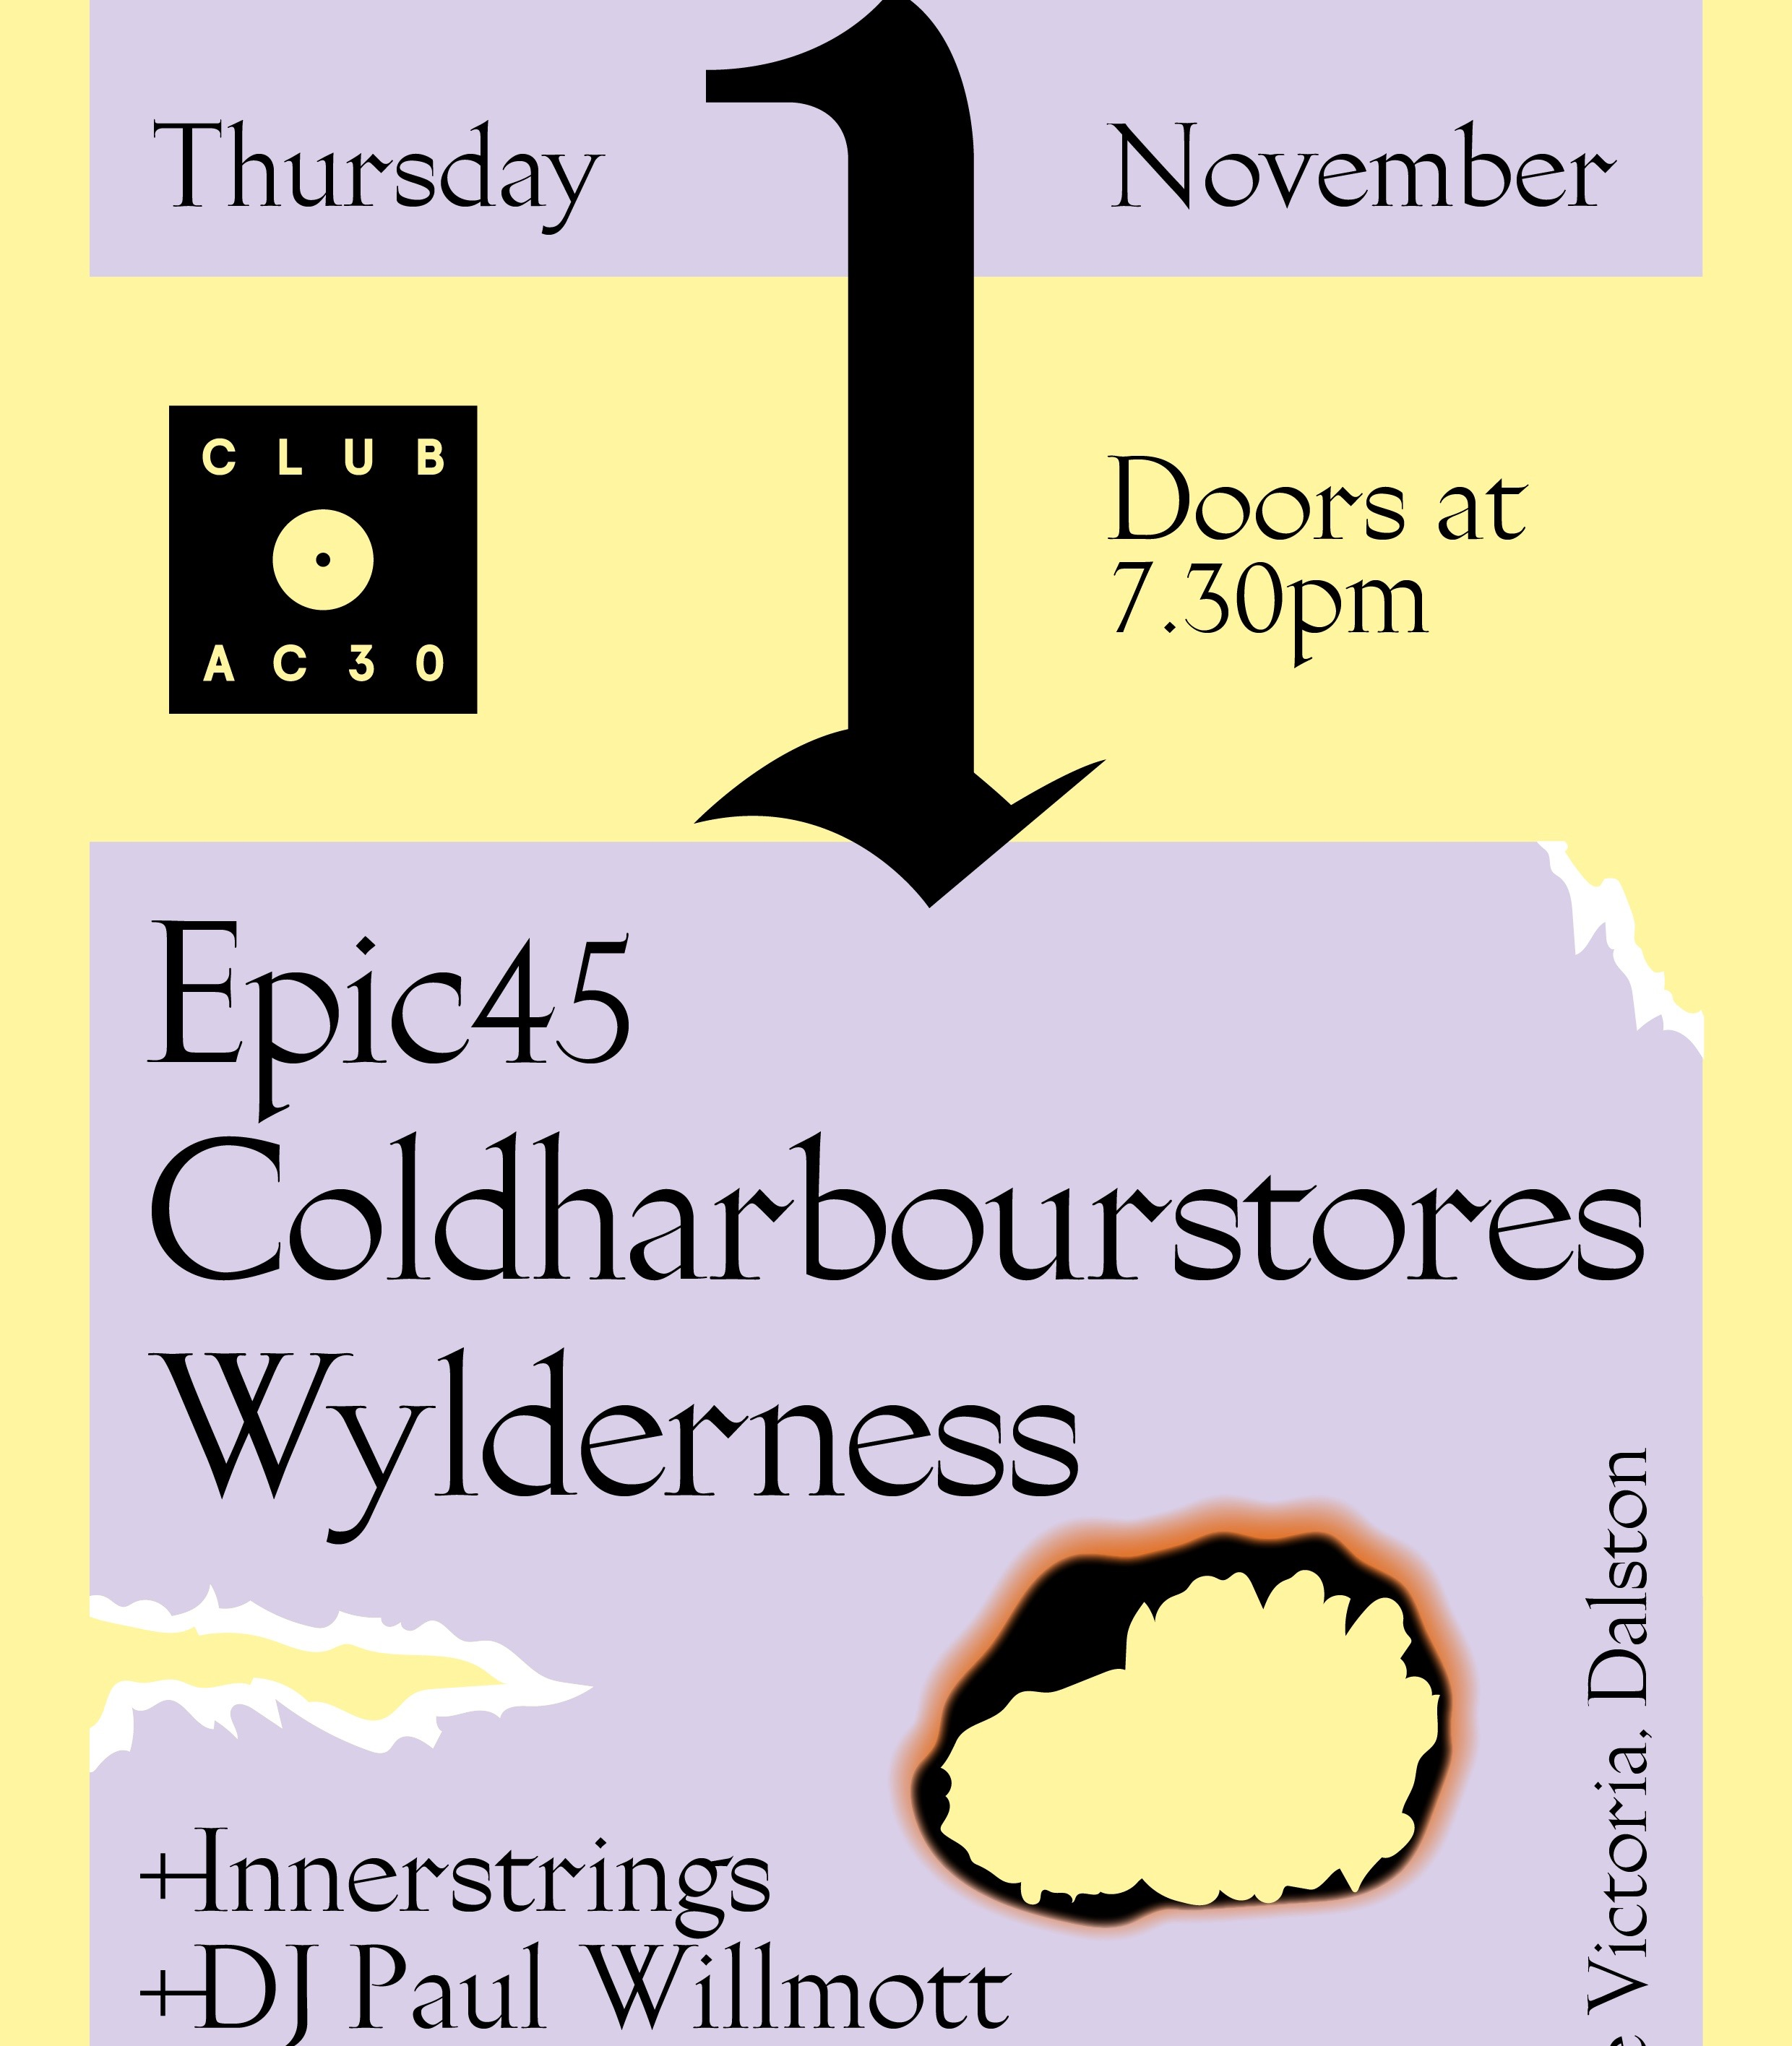 Club AC30: Epic45, Coldharbourstores, Wylderness at The Victoria promotional image